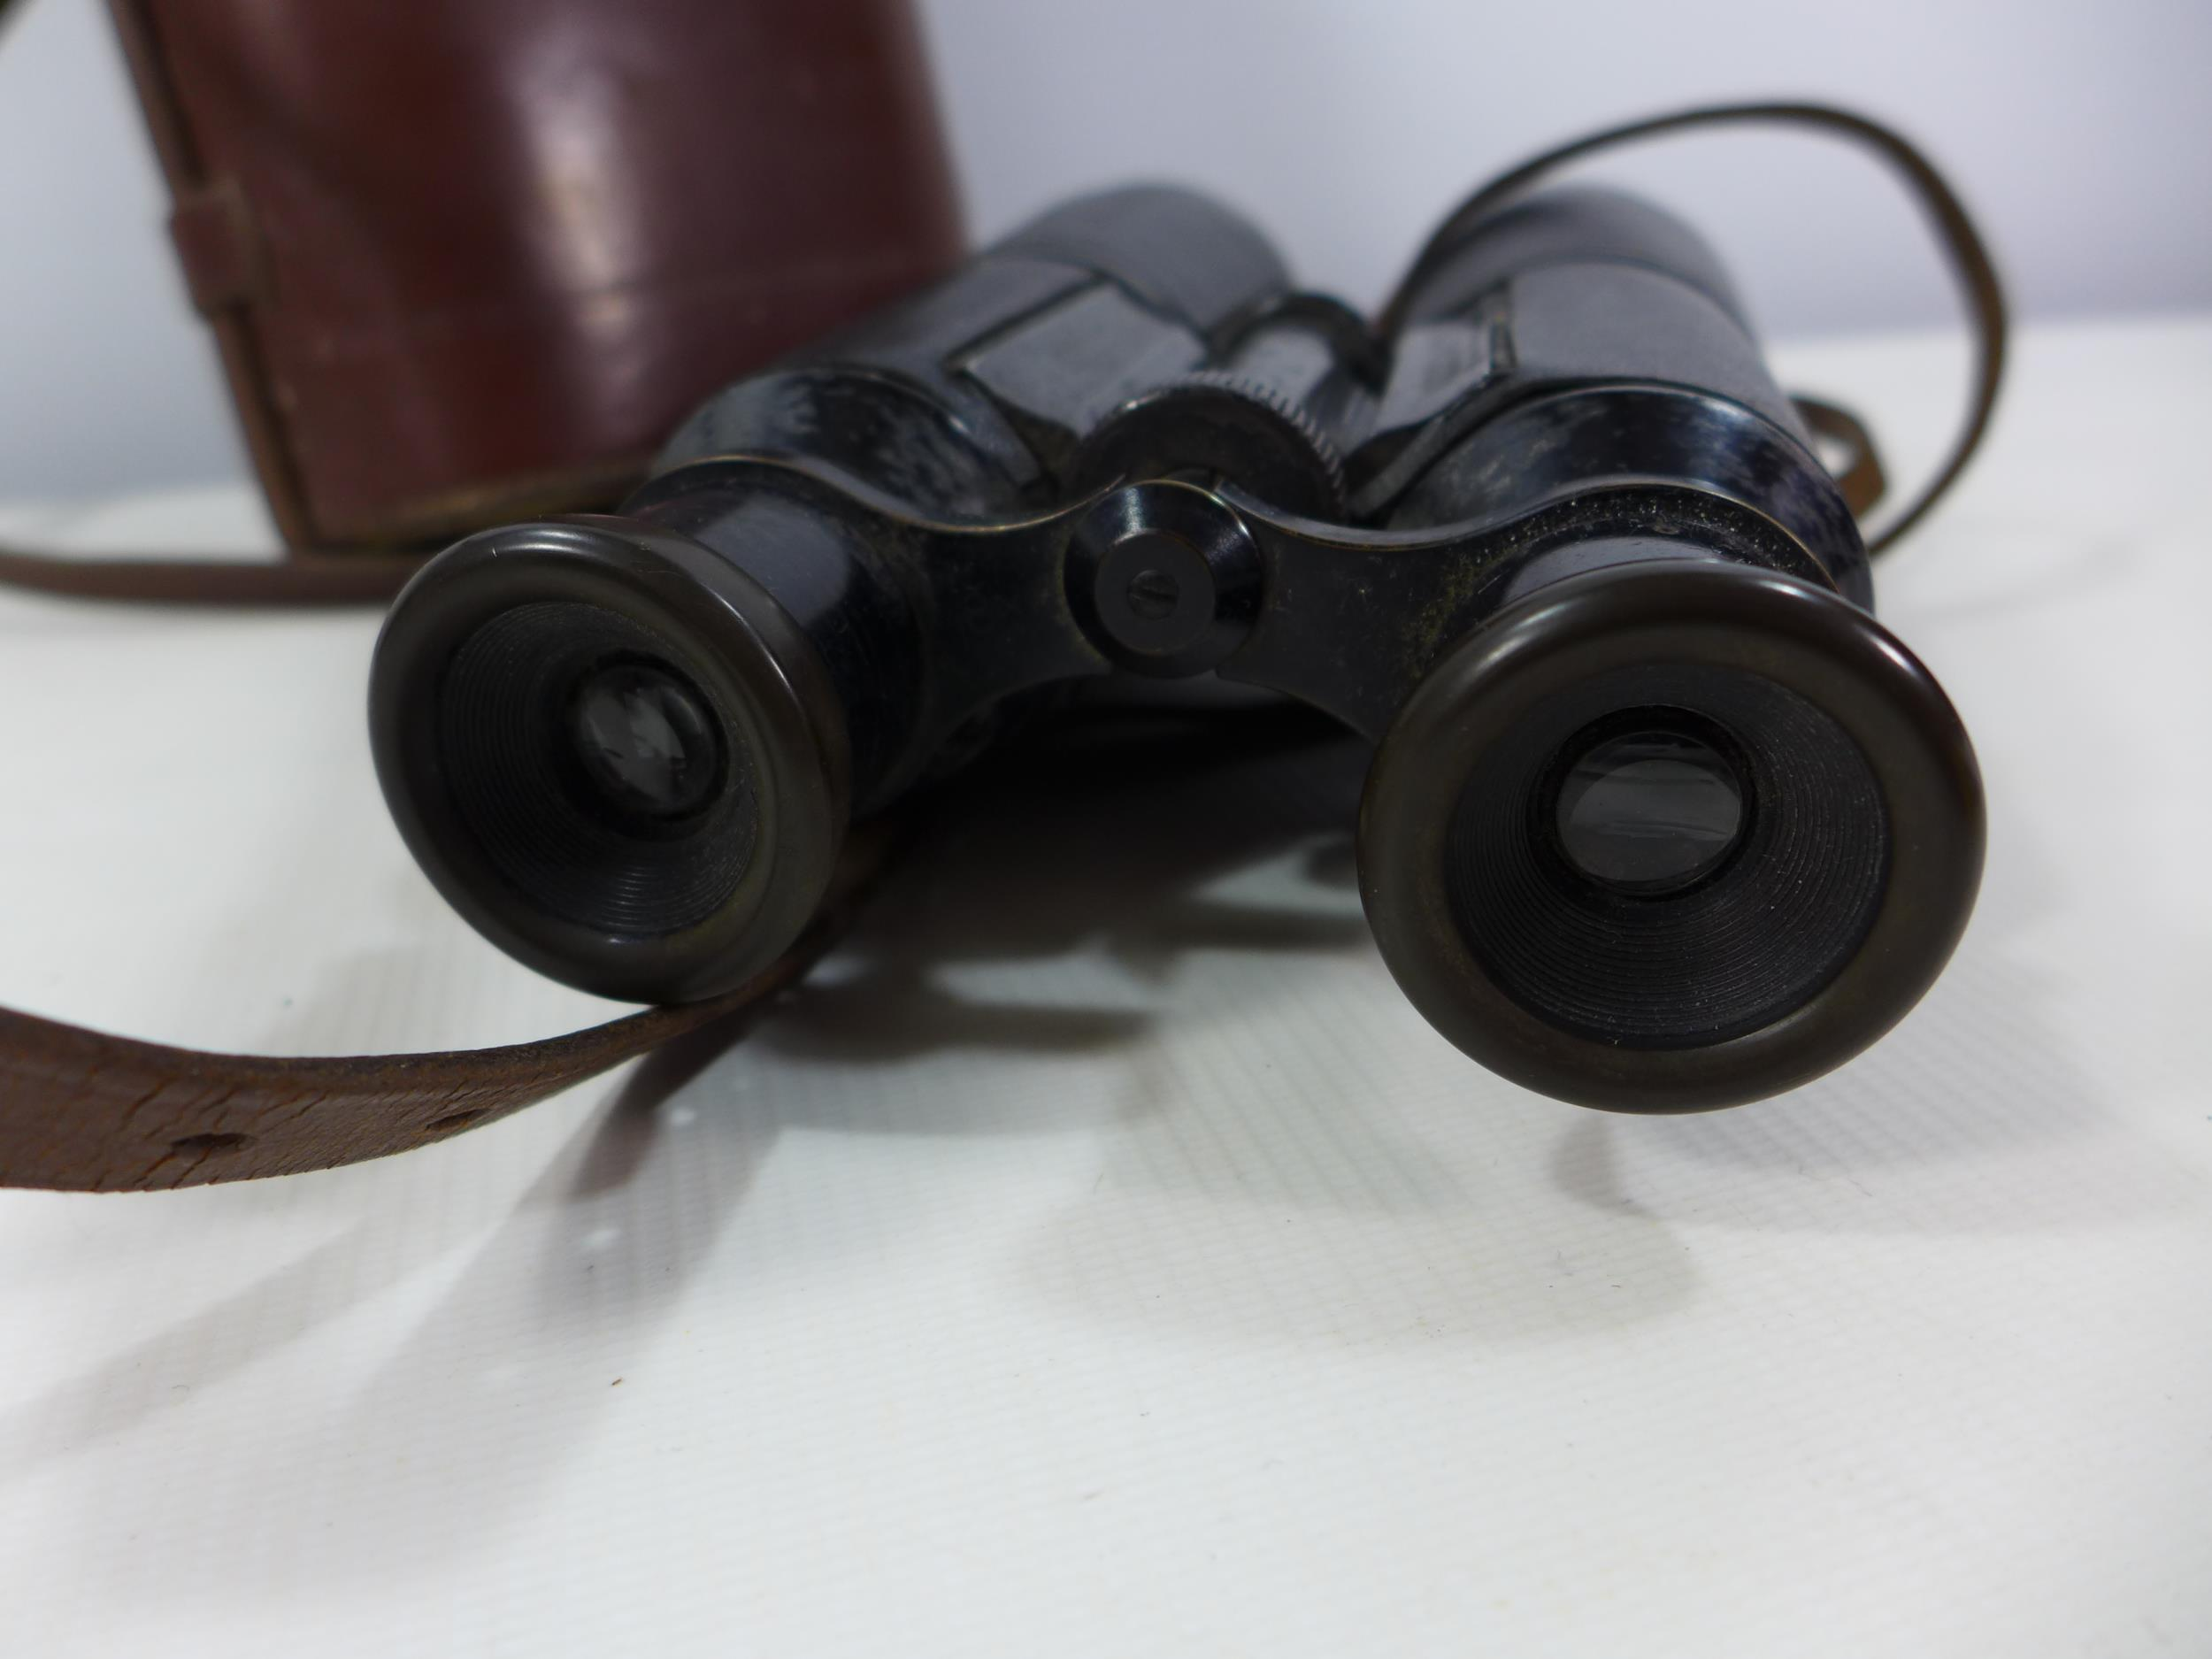 A PAIR OF IMPERIAL GERMAN HENSOLDT ARINE DIALYT 8X FERNGLAS BINOCULARS, TOGETHER WITH LEATHER CASE - Image 6 of 14